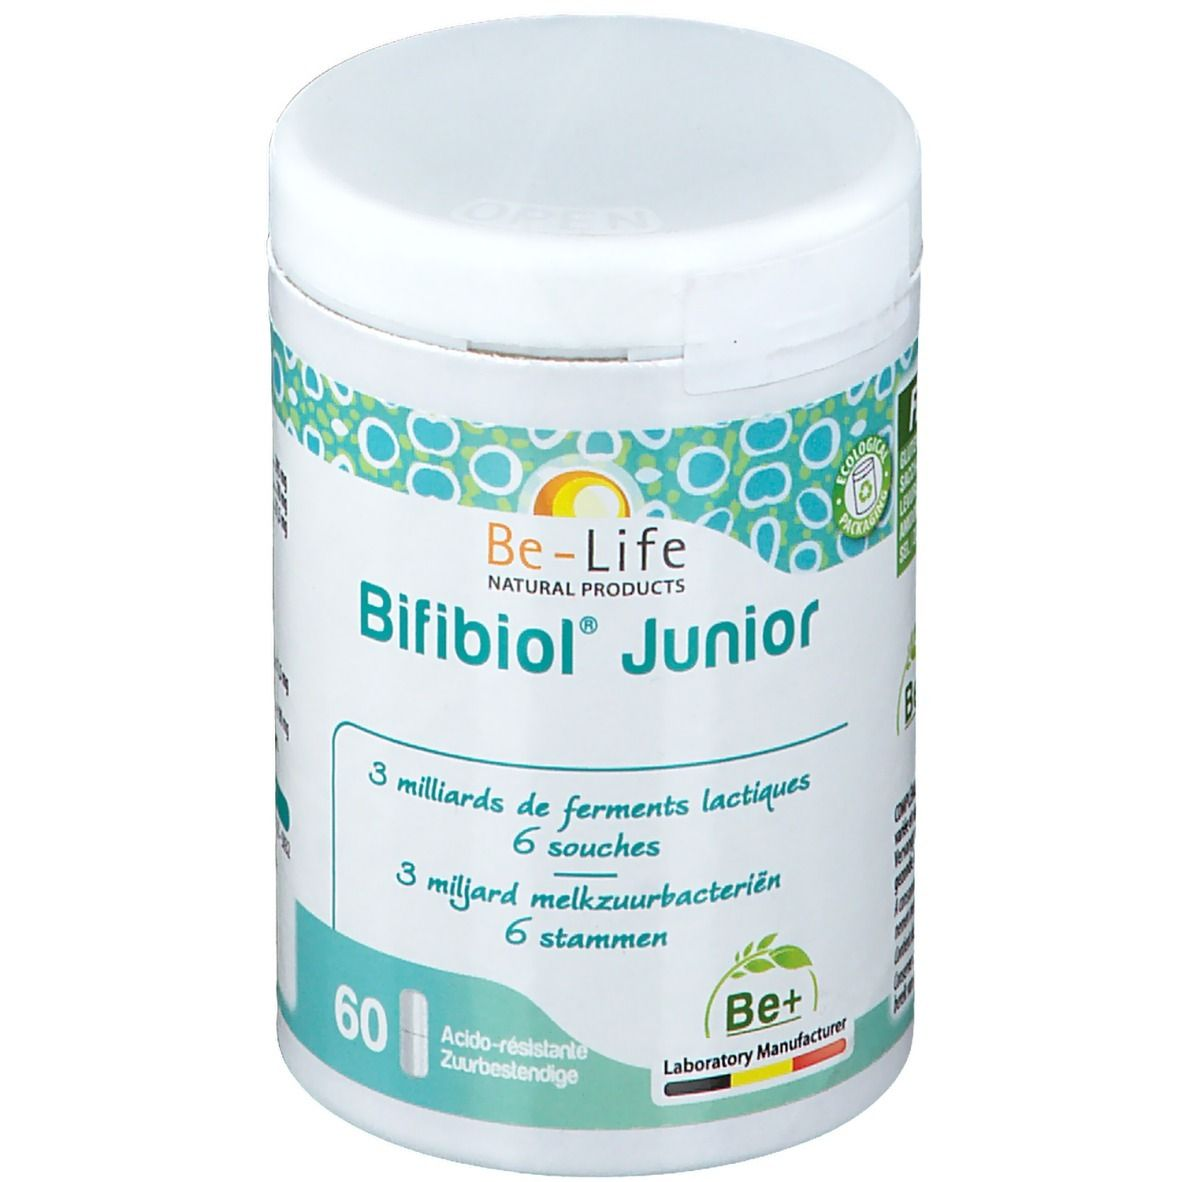 Image of Be-Life Bifibiol® Junior